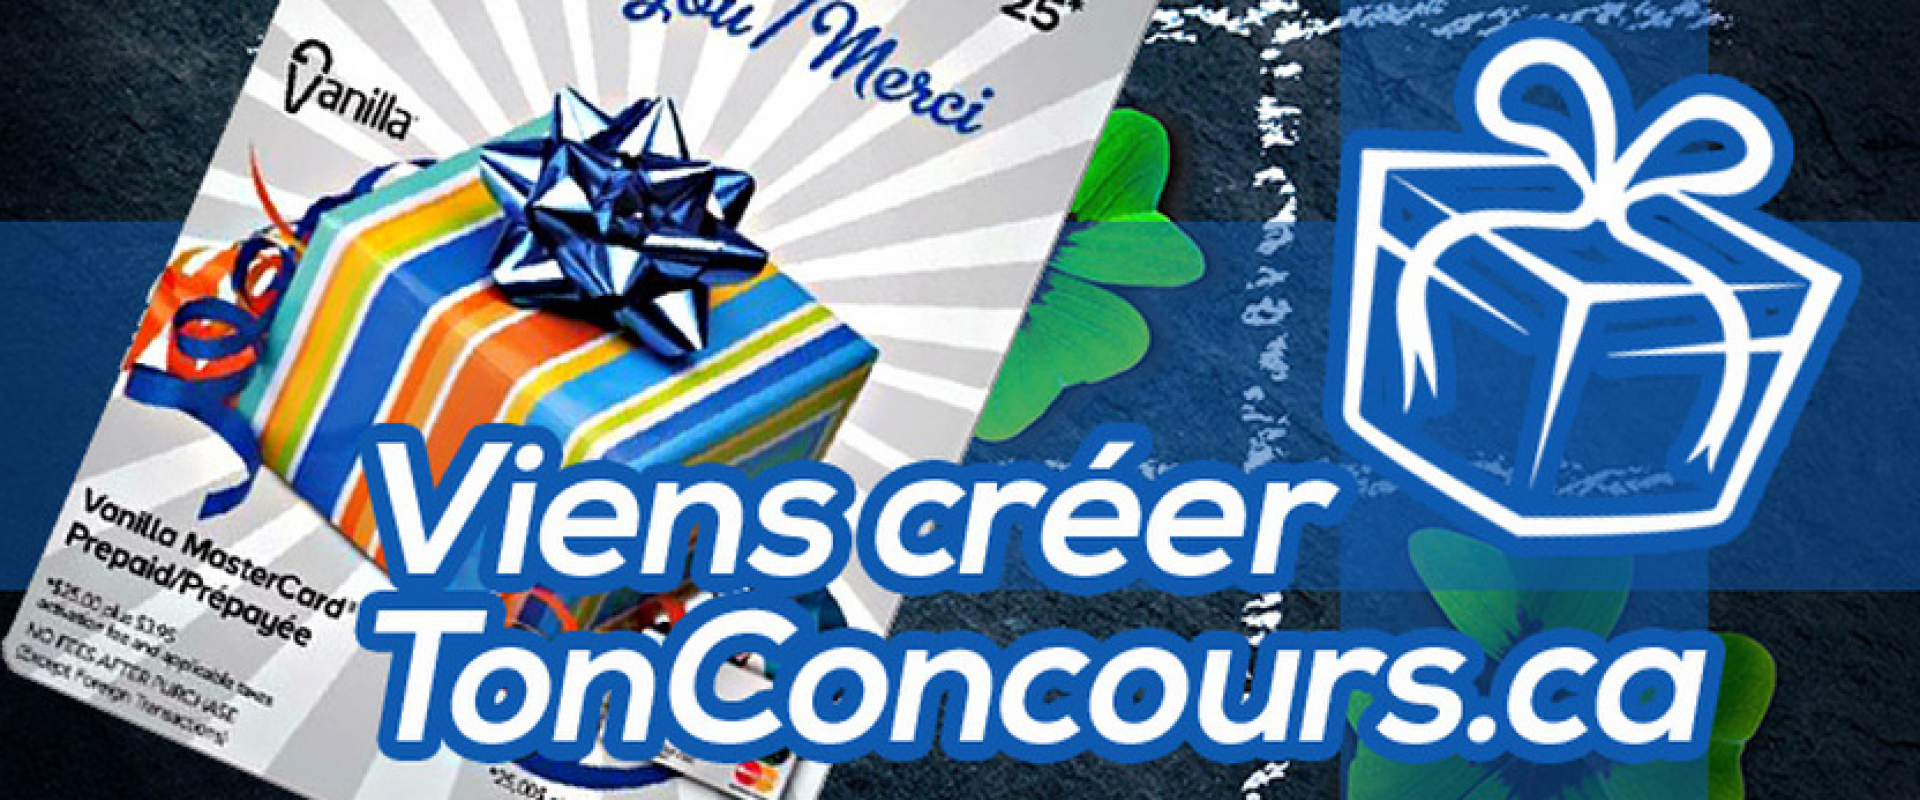 viens-creer-ton-concours-.png